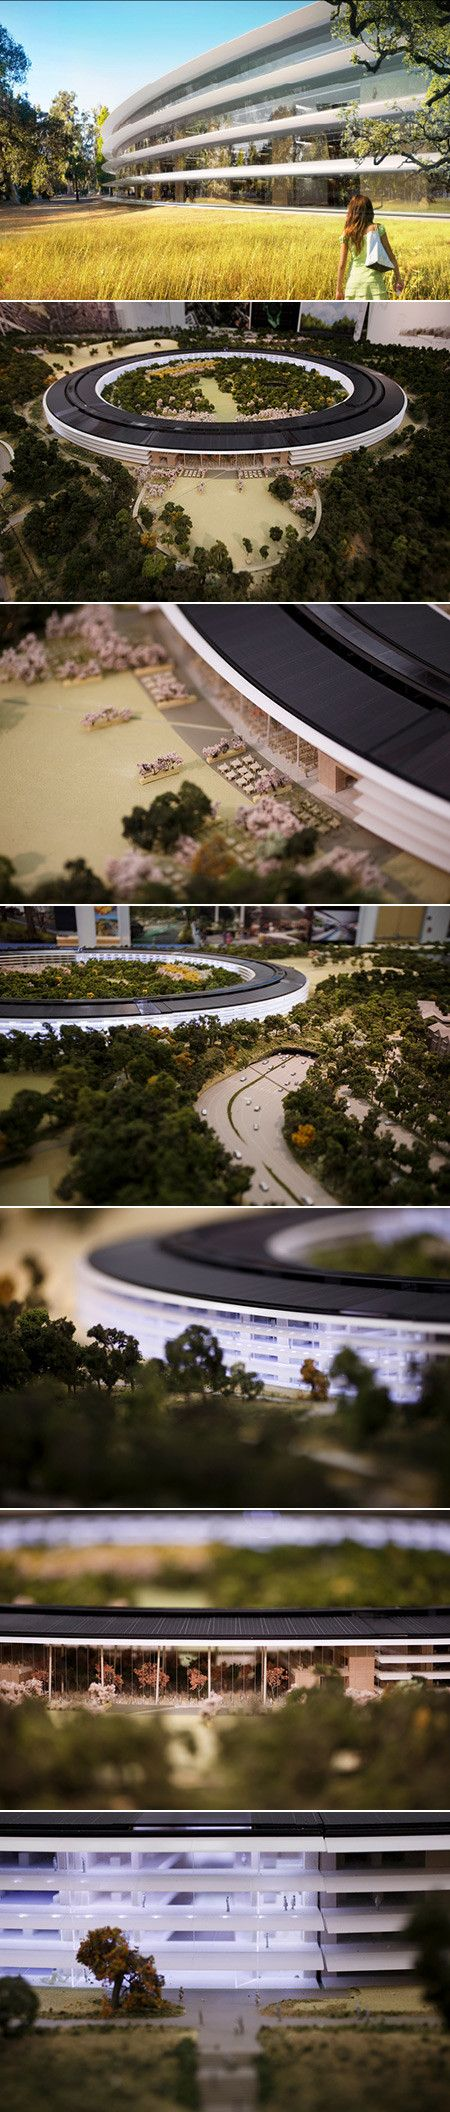 Apple's Spaceship Campus - Apple CEO Tim Cook said at the NYC Climate Week event the new spaceship campus, worth more than $5 billion, will be 'greenest building on the planet'